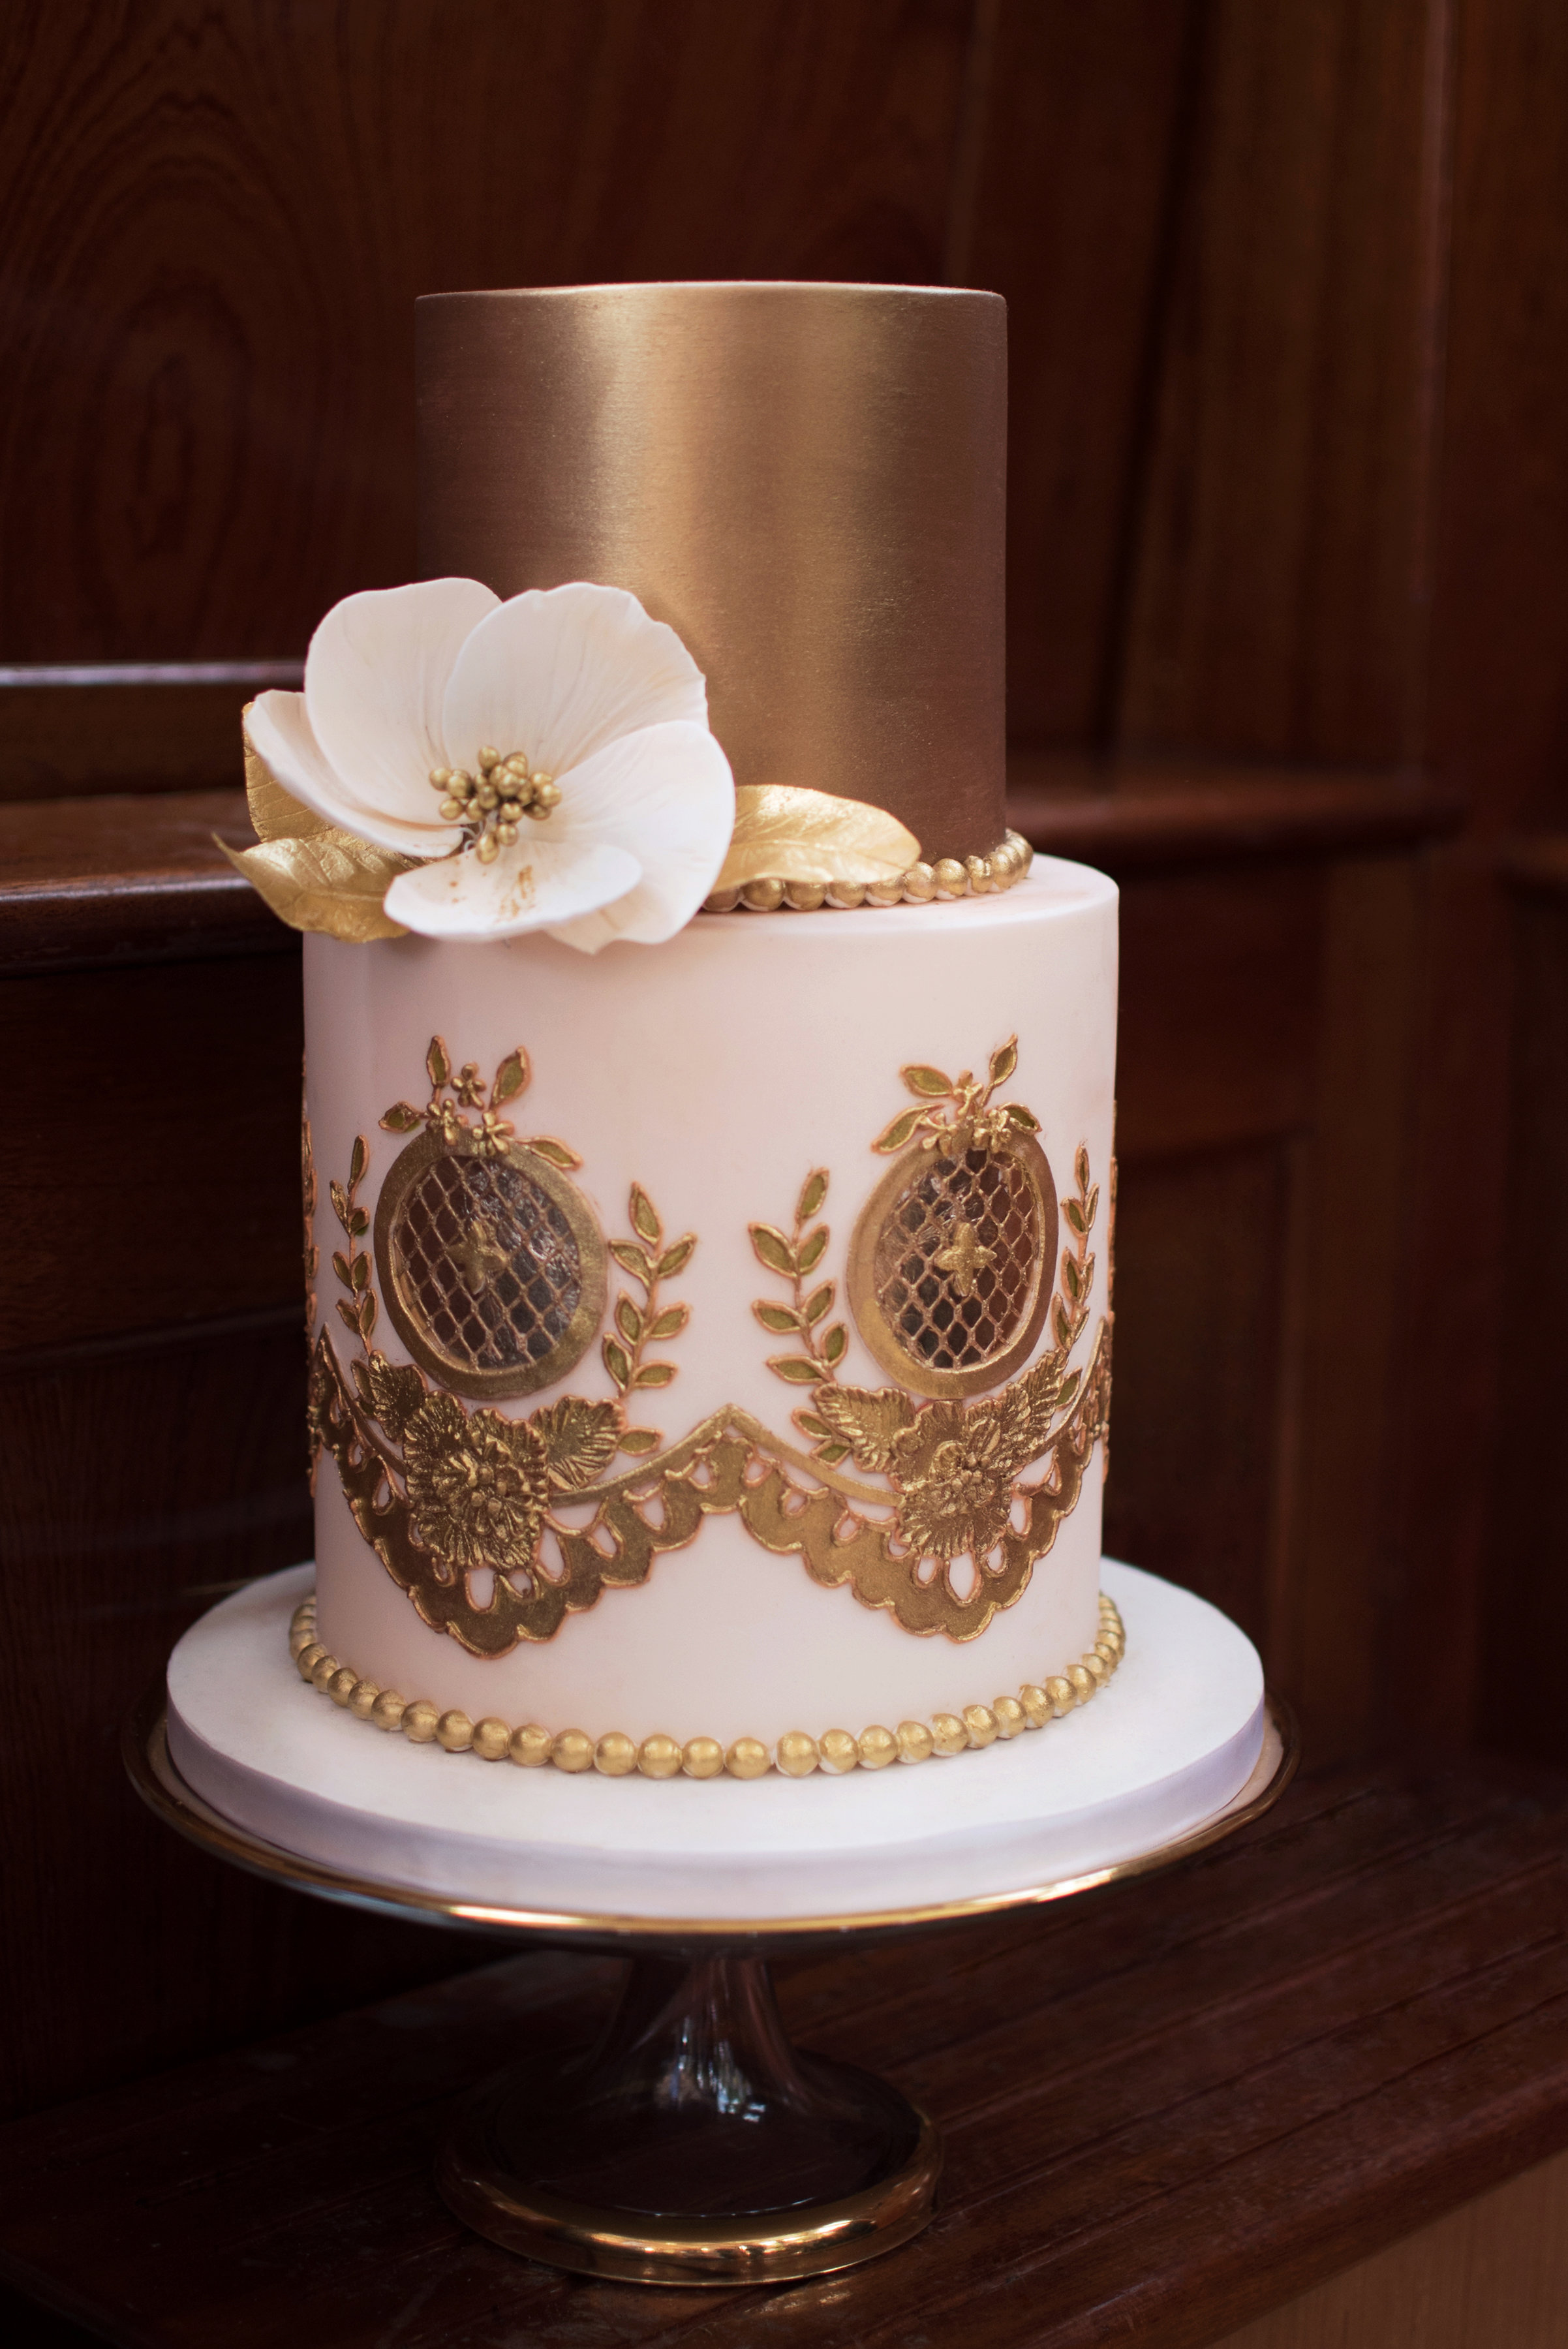 Dolce Lusso Cakes 4 tier handpiped lace pattern ivory blush pink sugar flower rose